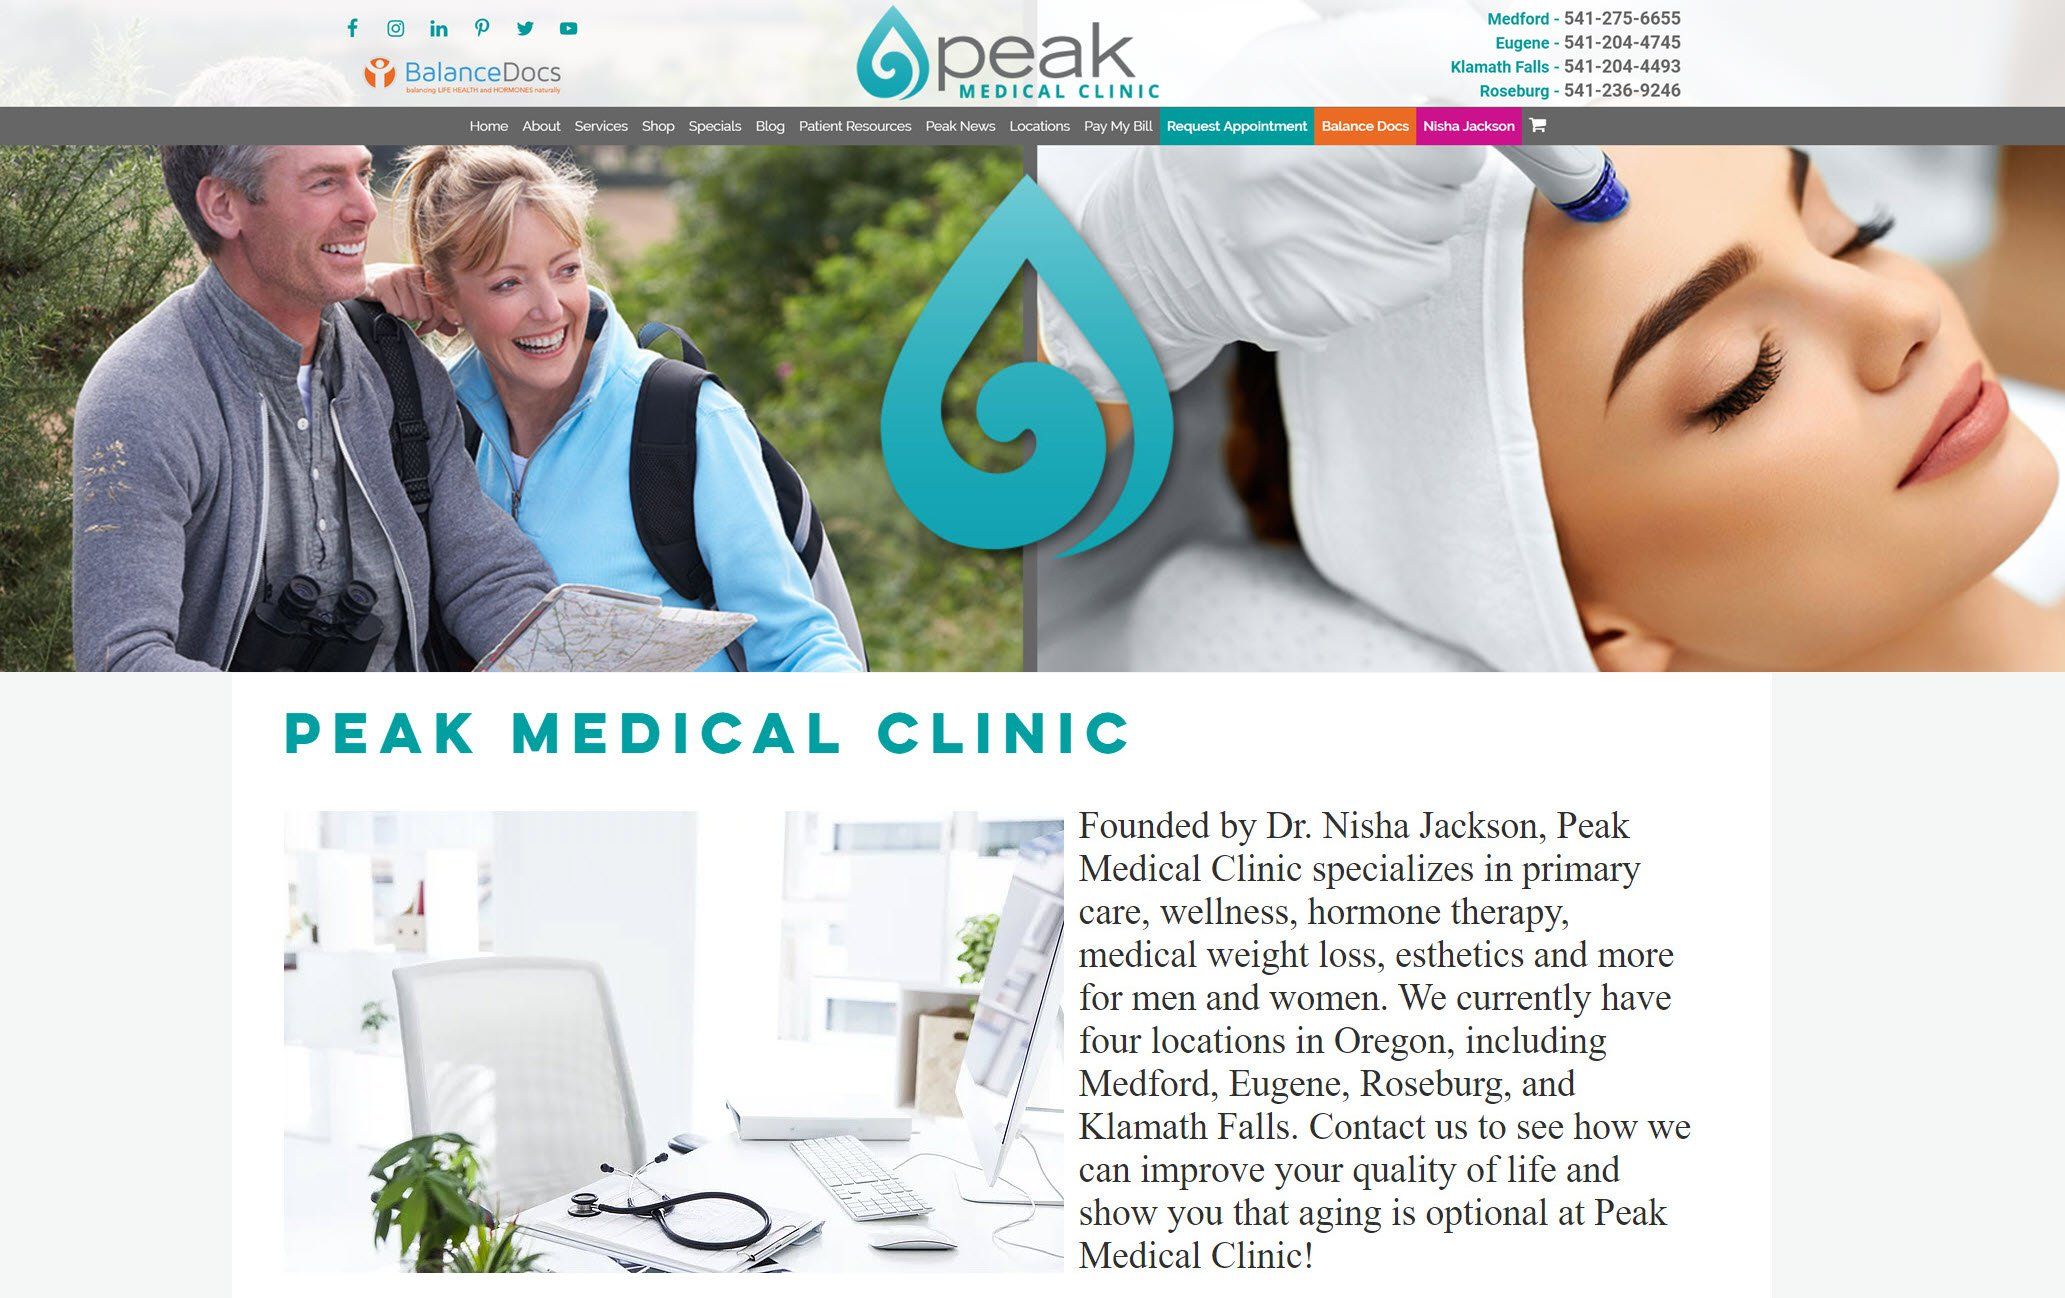 Peak Medical Clinic